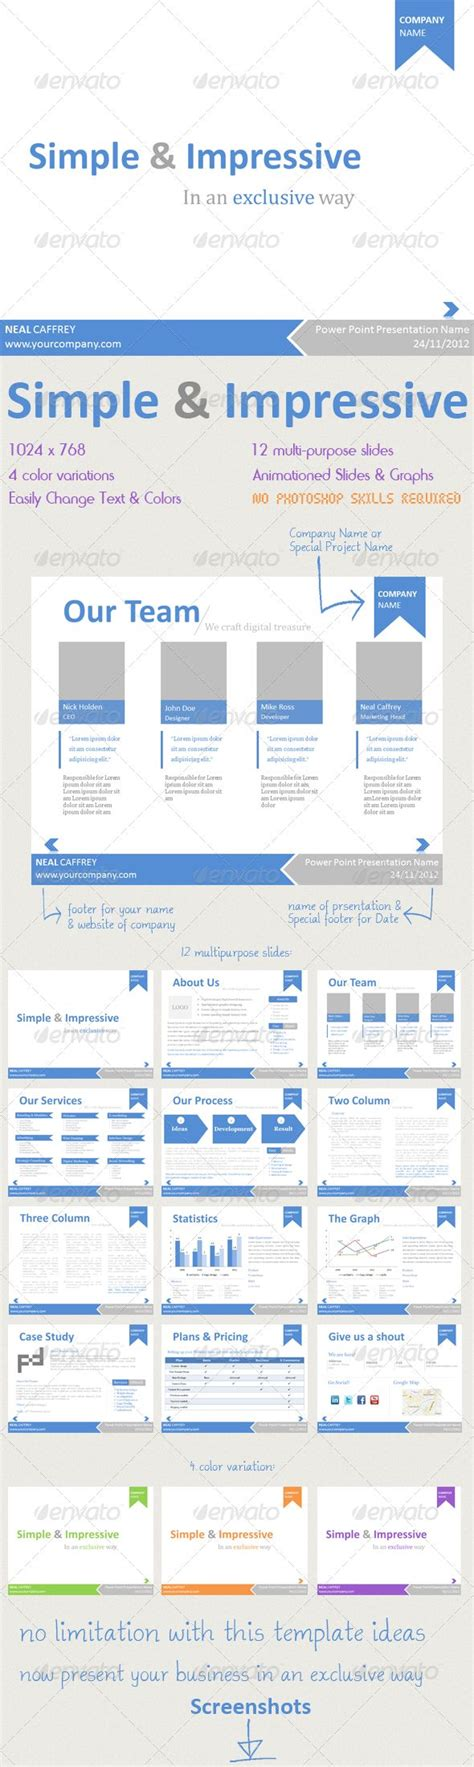 Simple Impressive Powerpoint Template Creative Design Fonts And Green Ideas Impressive Powerpoint Templates